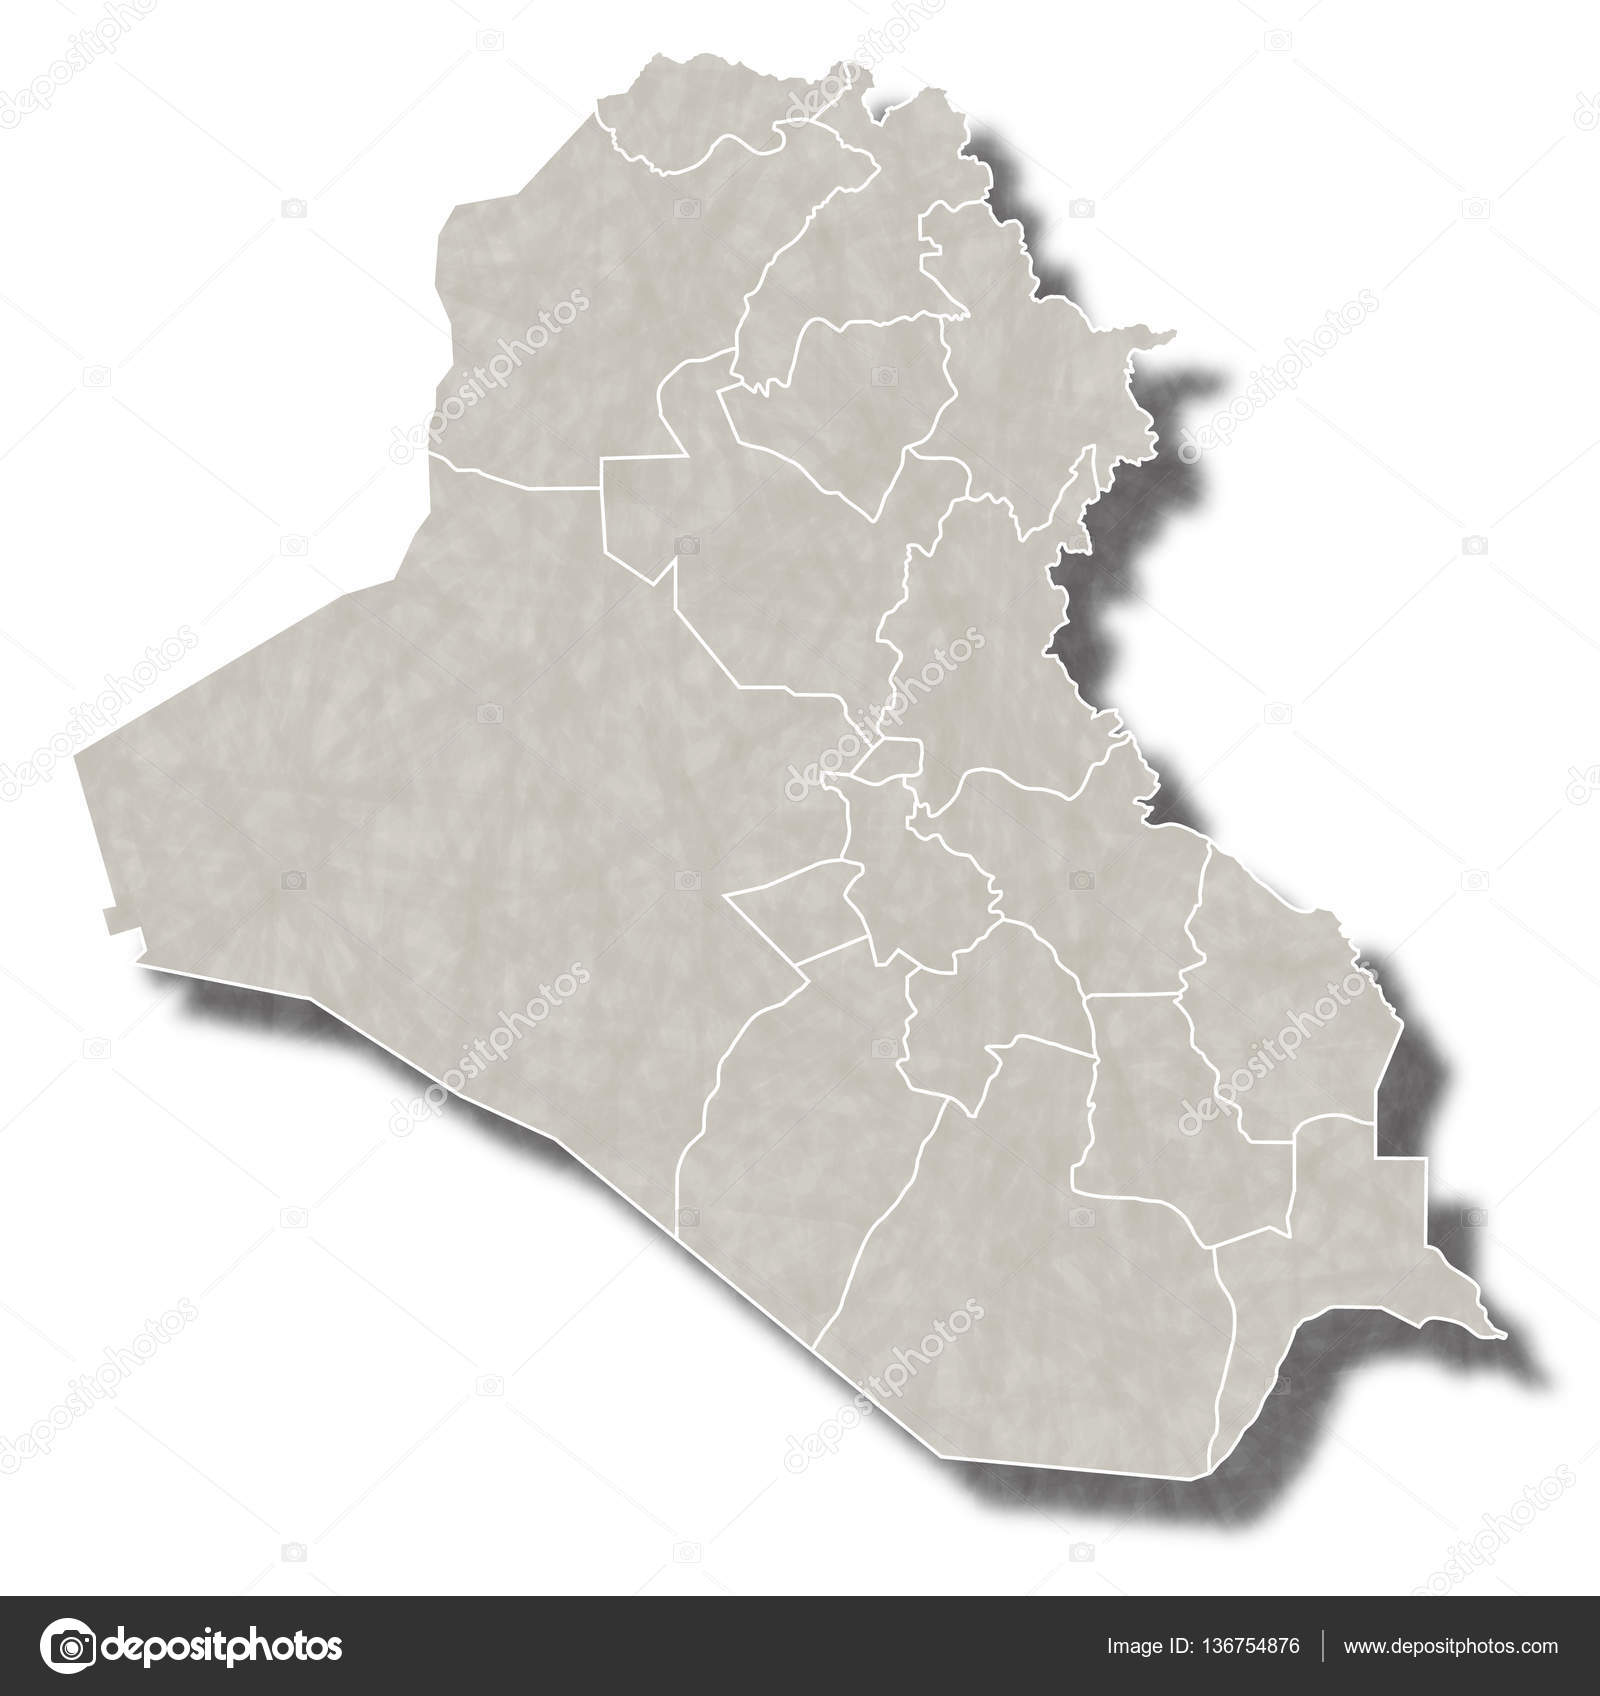 Iraq map city icon Stock Vector JBOY24 136754876